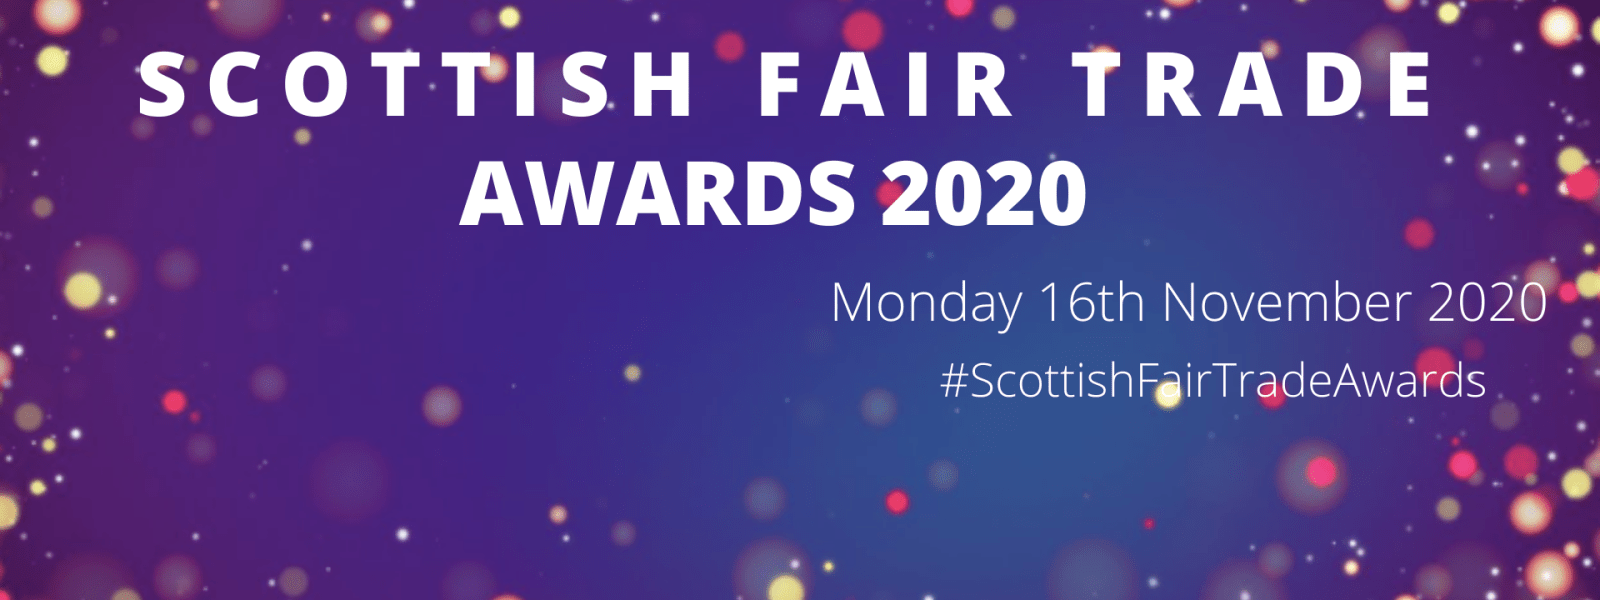 """A picture with some yellowish and reddish lights in the background with the text """"Scottish Fair Trade Awards 2020"""""""